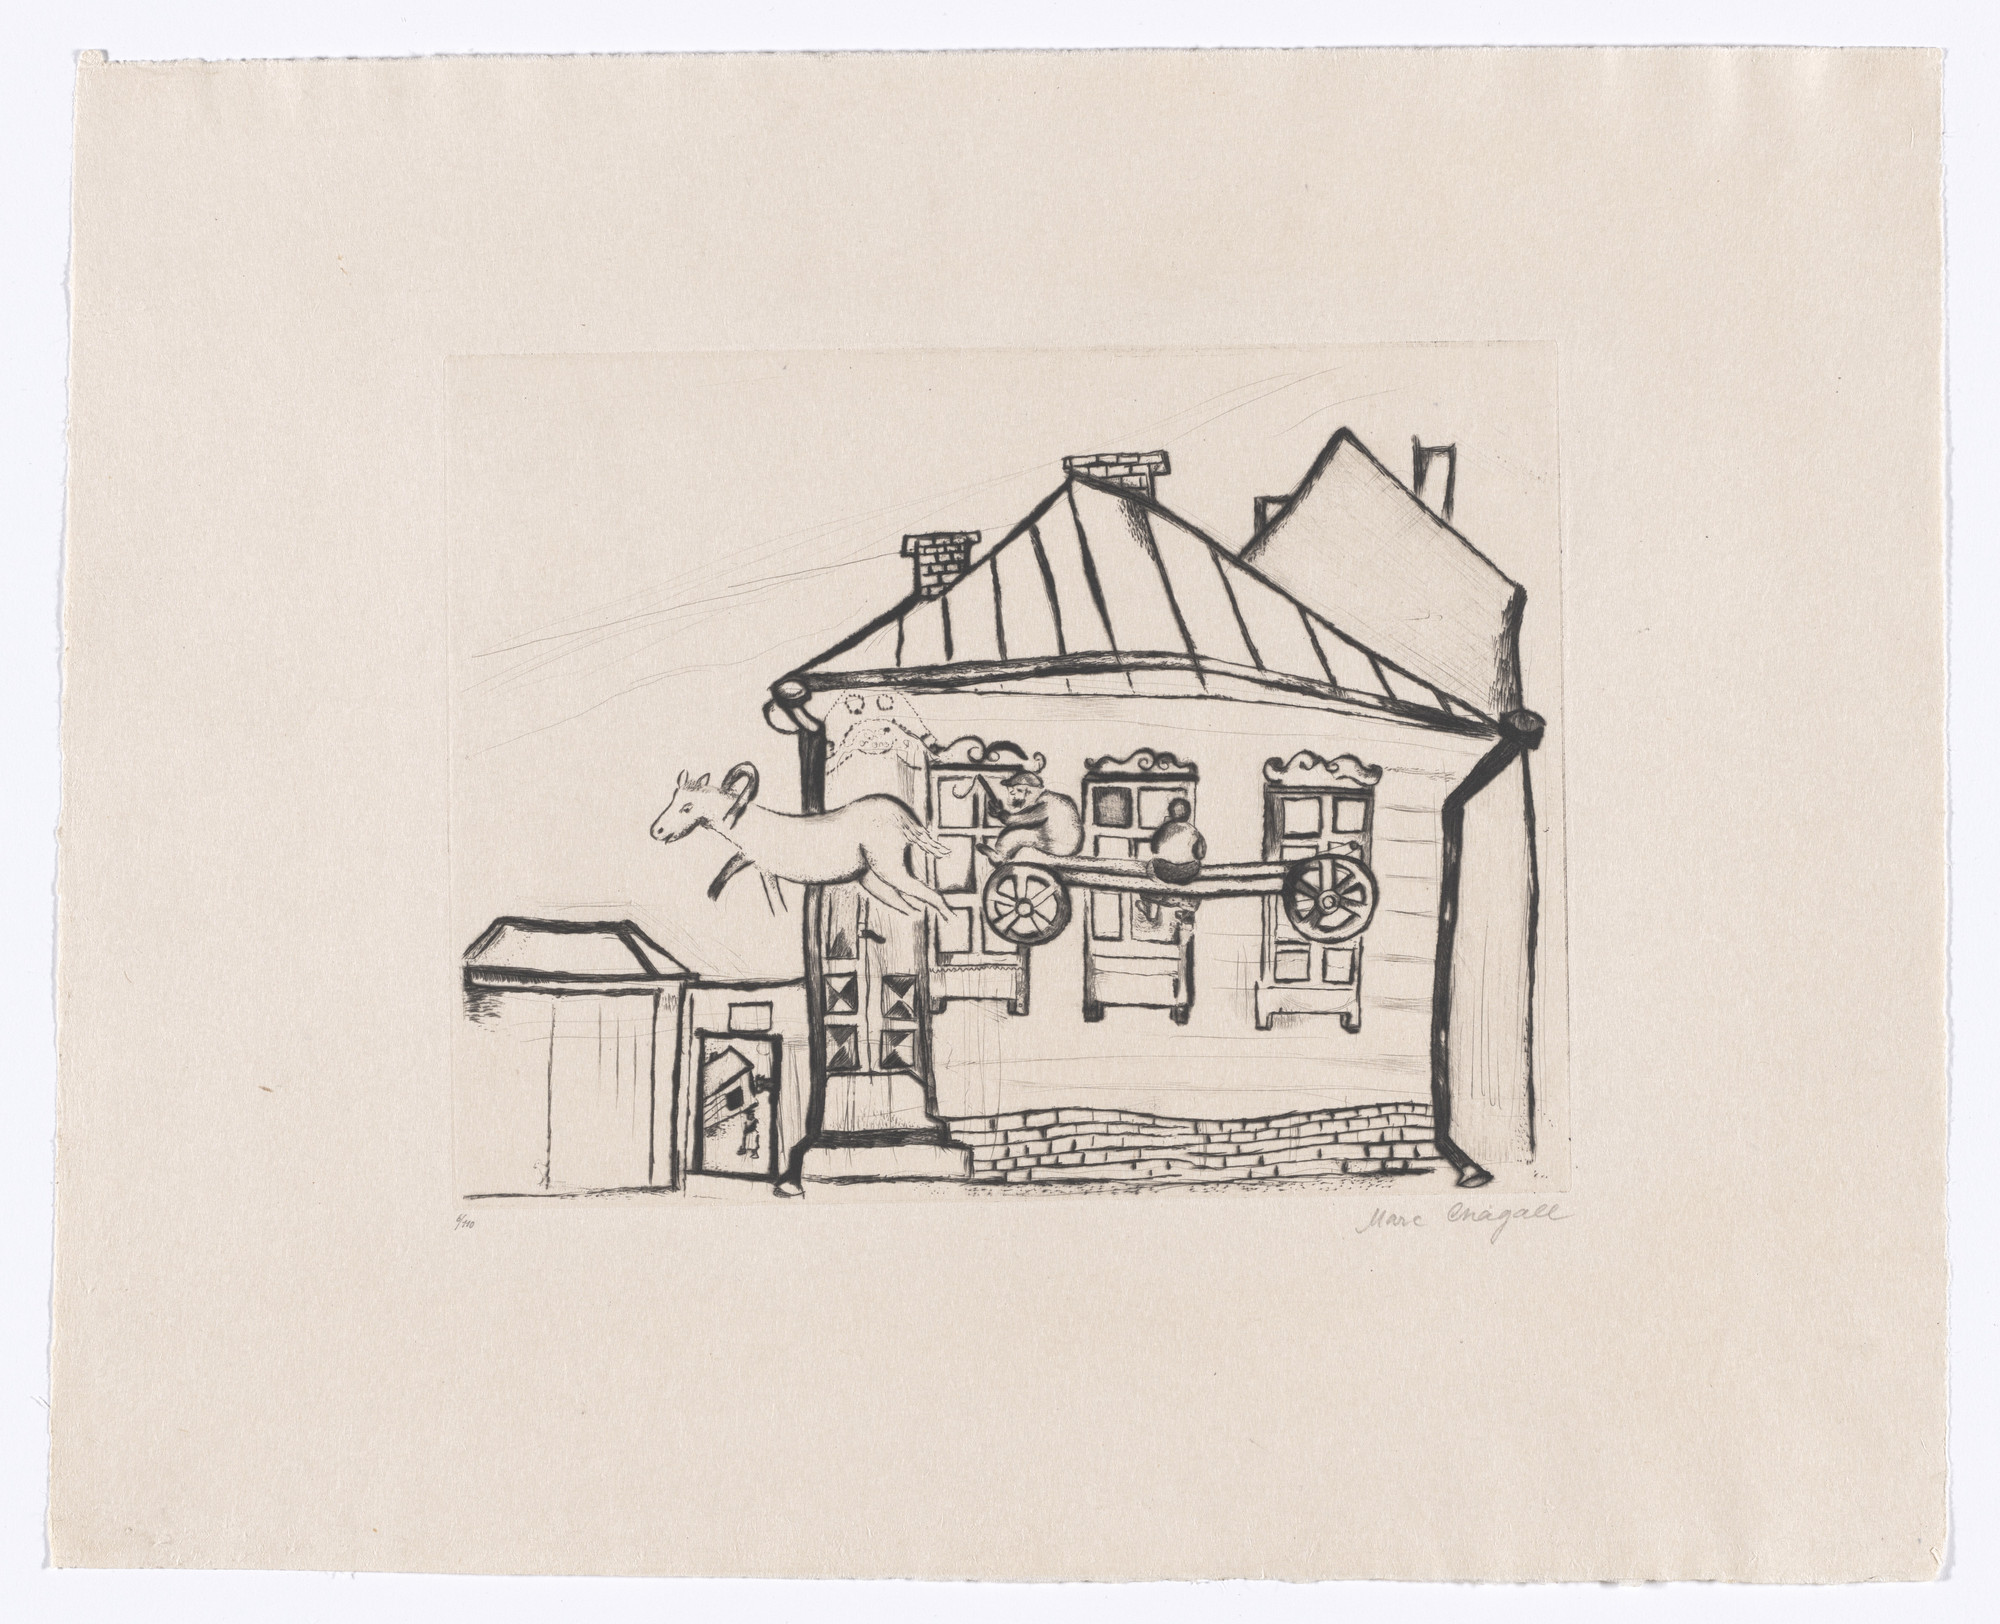 Marc Chagall. House in Witebsk (Haus in Witebsk) from My Life (Mein Leben). 1922, published 1923